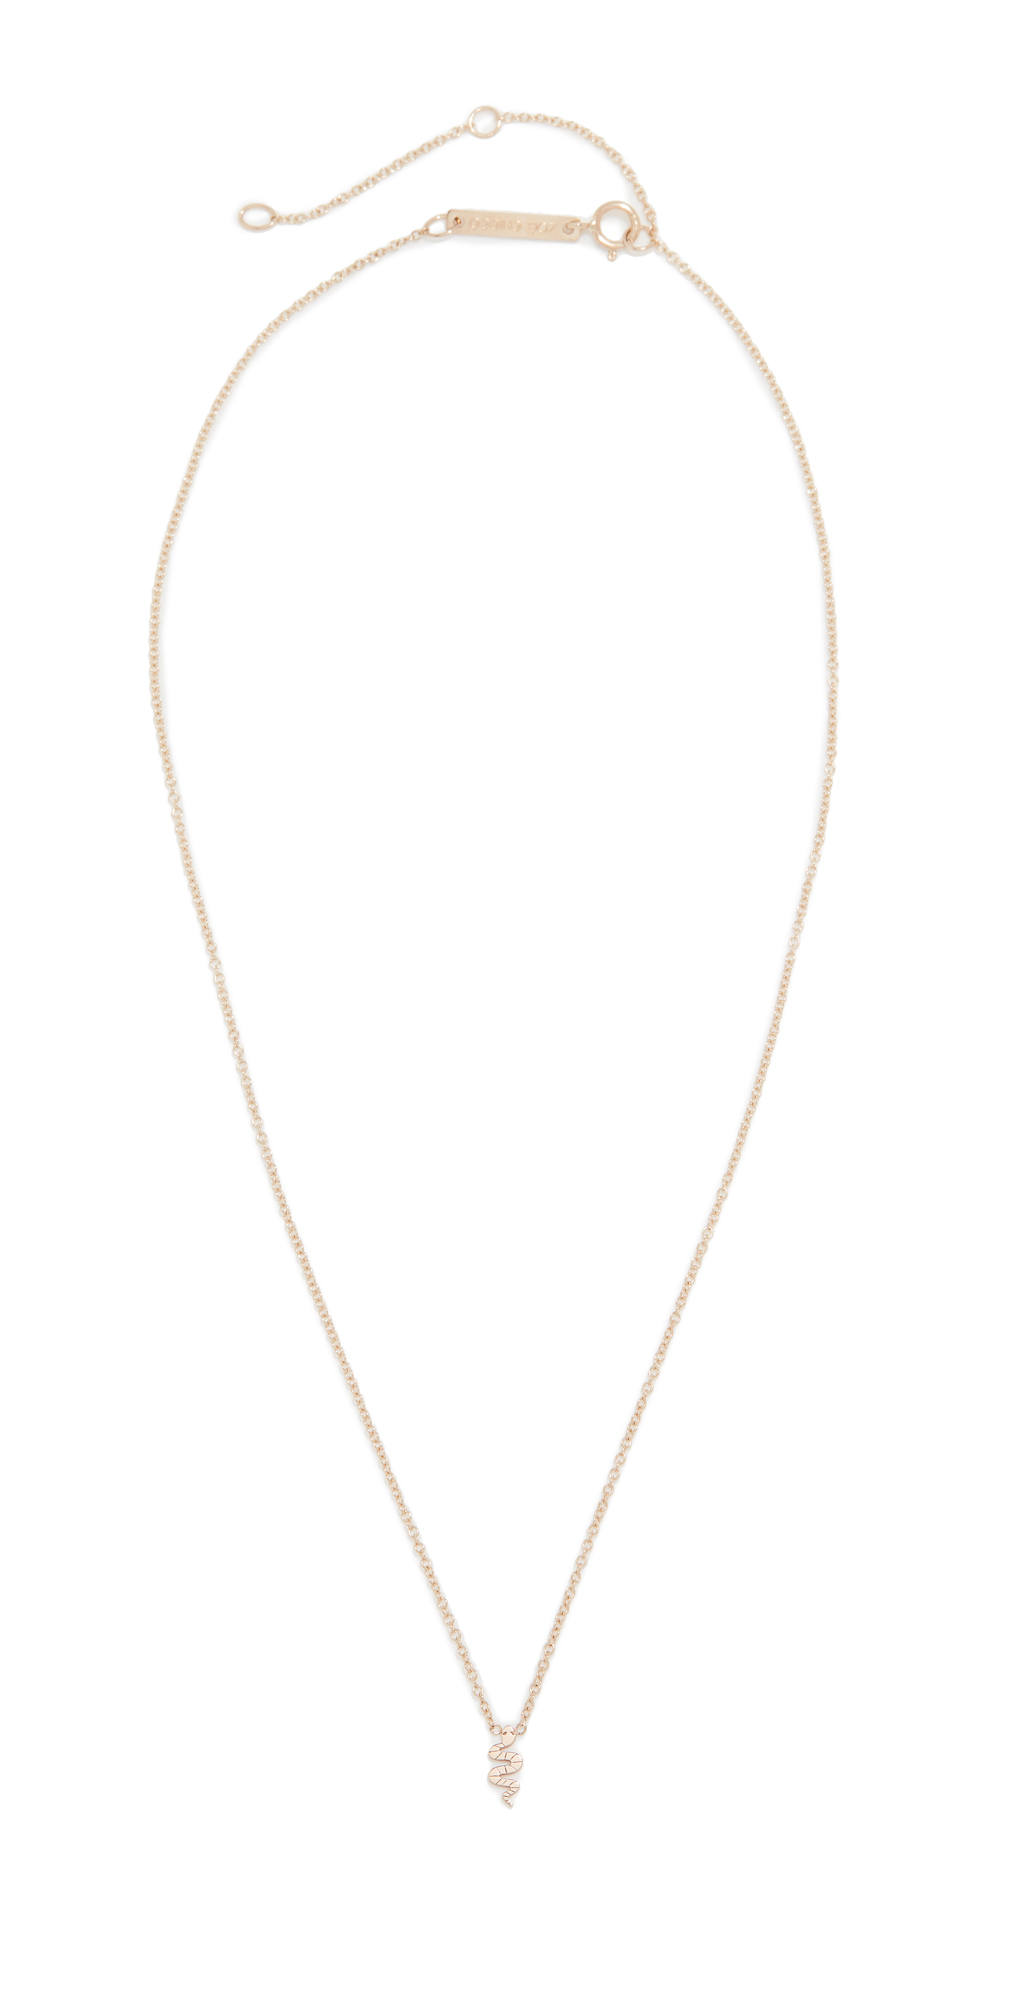 Zoë Chicco Itty Bitty Symbols Necklace In Gold